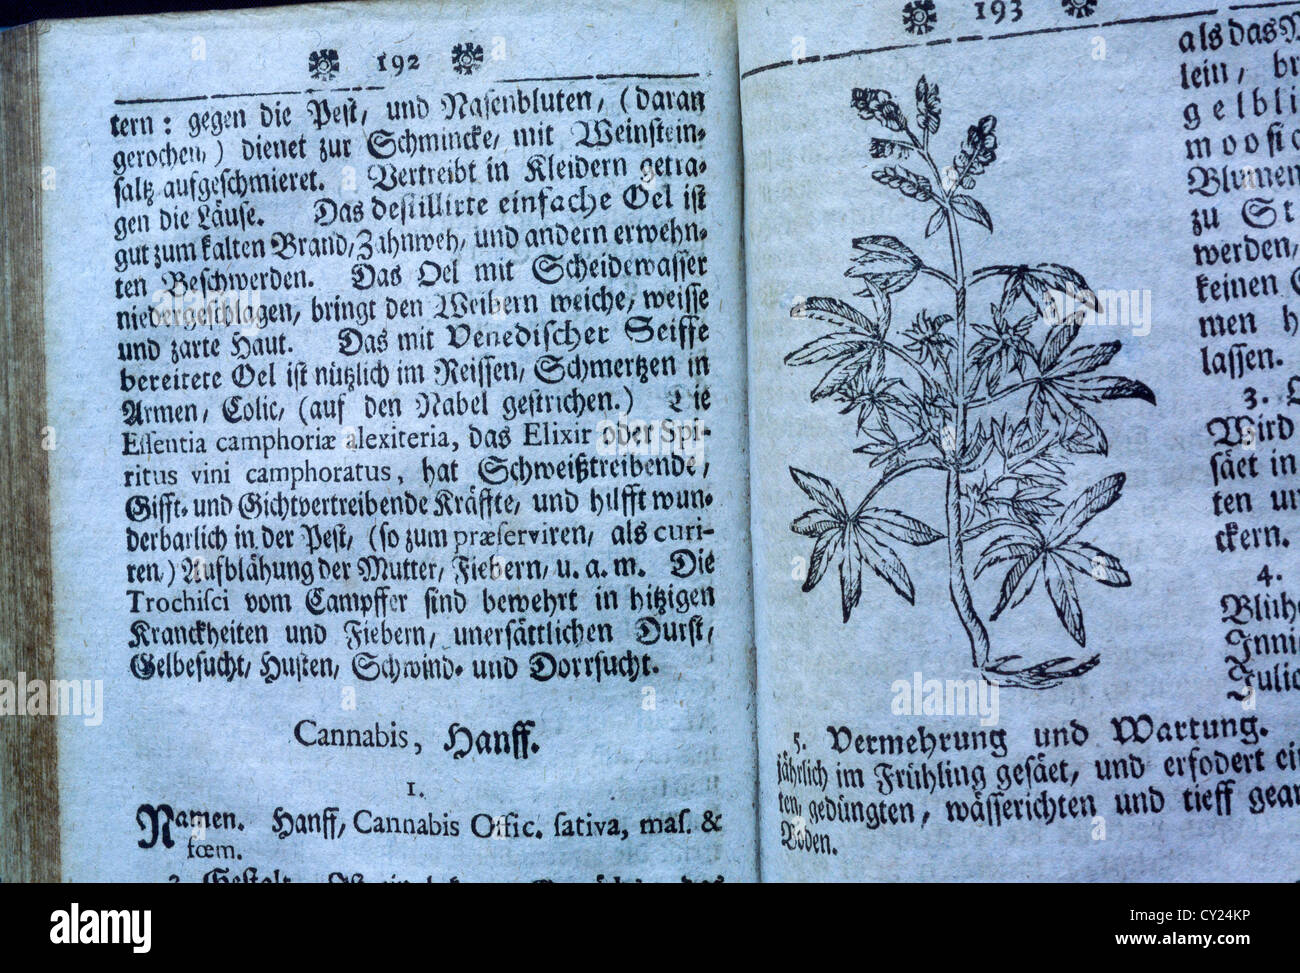 'Botanicus' old book by Curioser. Page about cannabis plant. - Stock Image